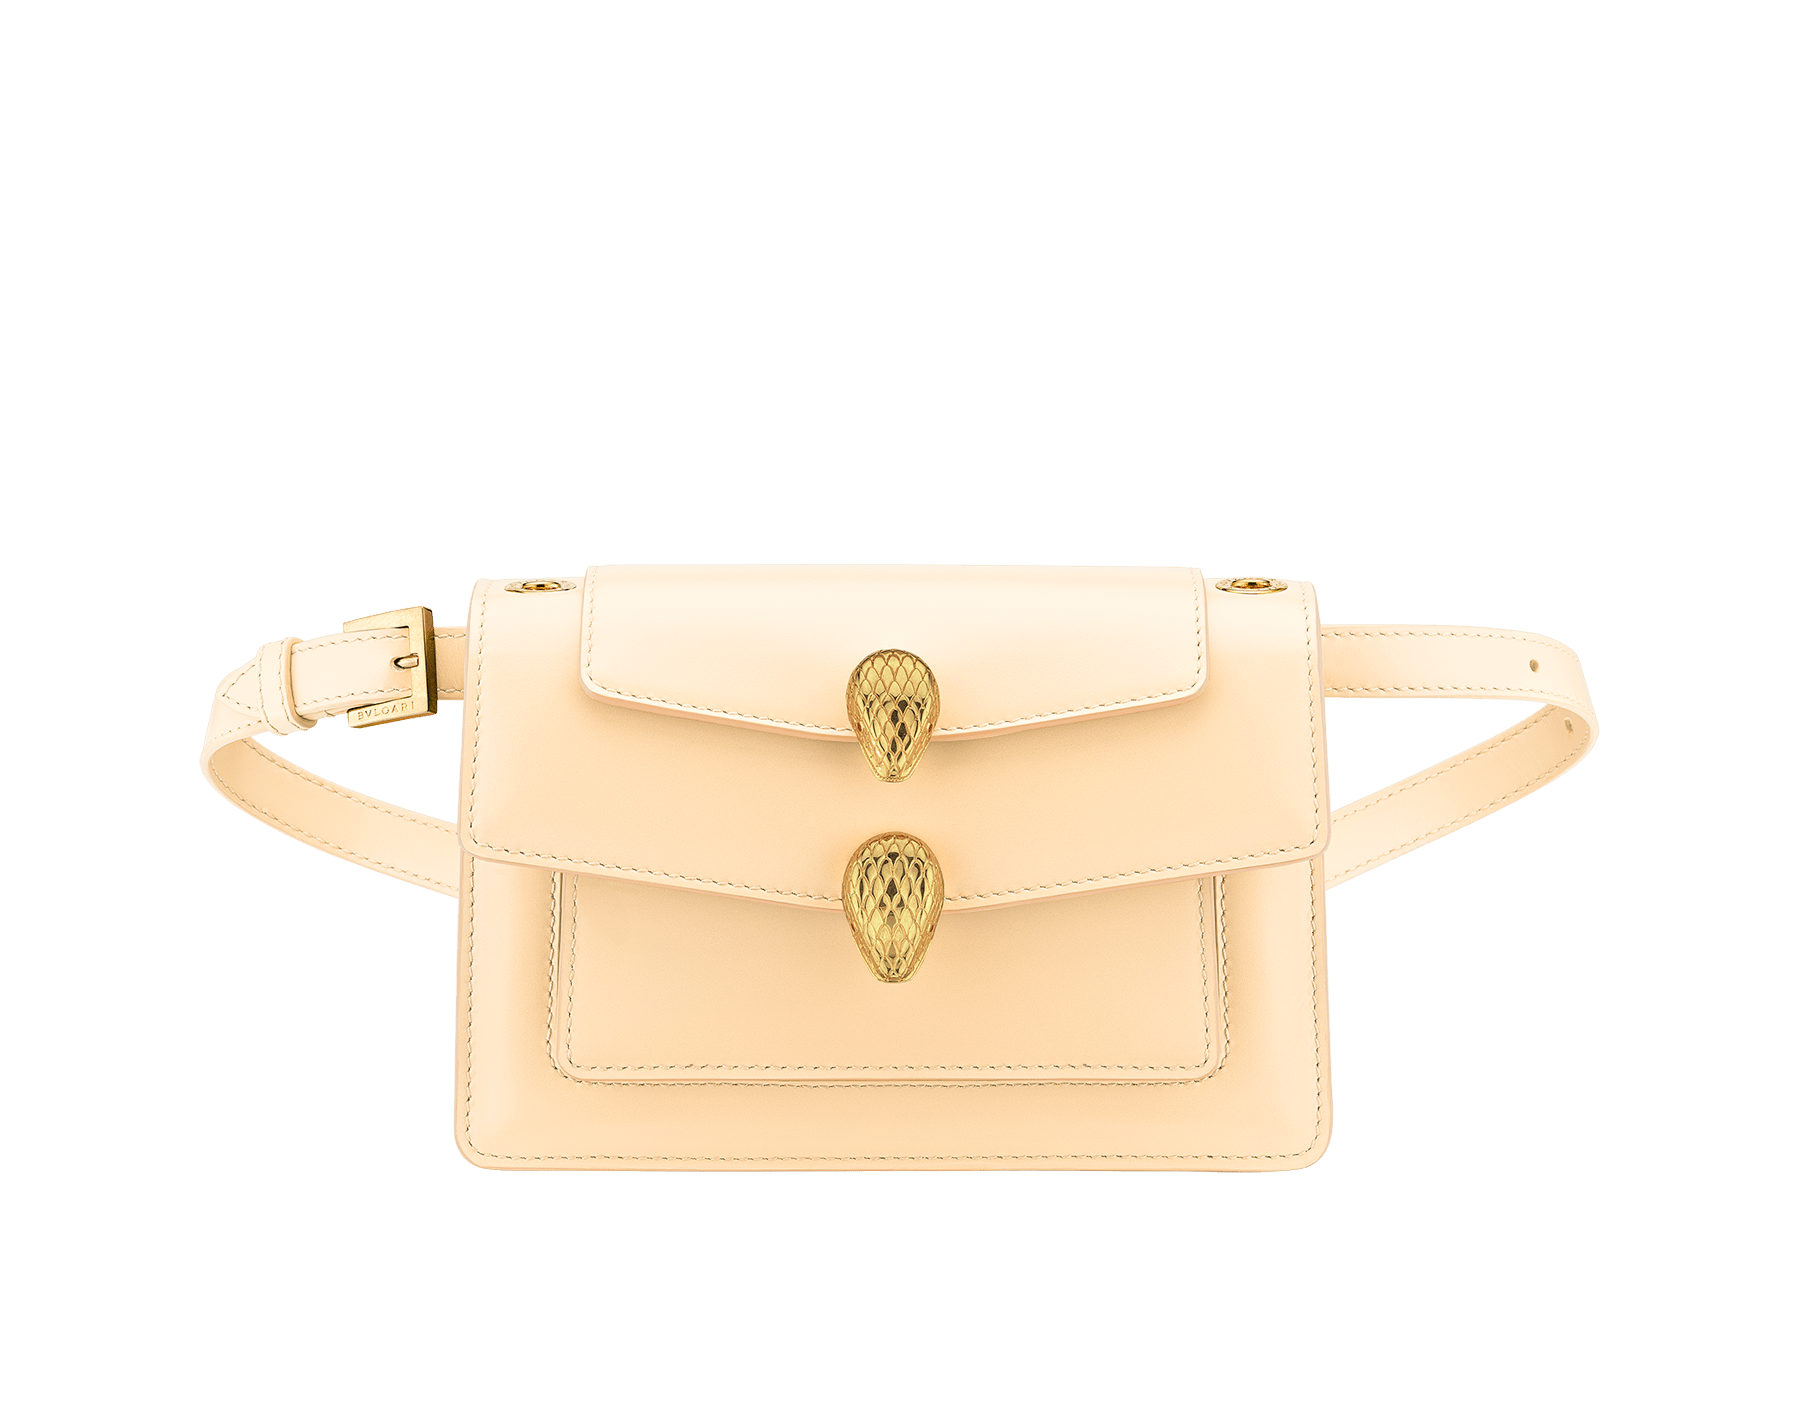 """Alexander Wang x Bvlgari"" belt bag in smooth peach calf leather. New double Serpenti head closure in antique gold plated brass with tempting red enamel eyes. Limited edition. 290308 image 4"